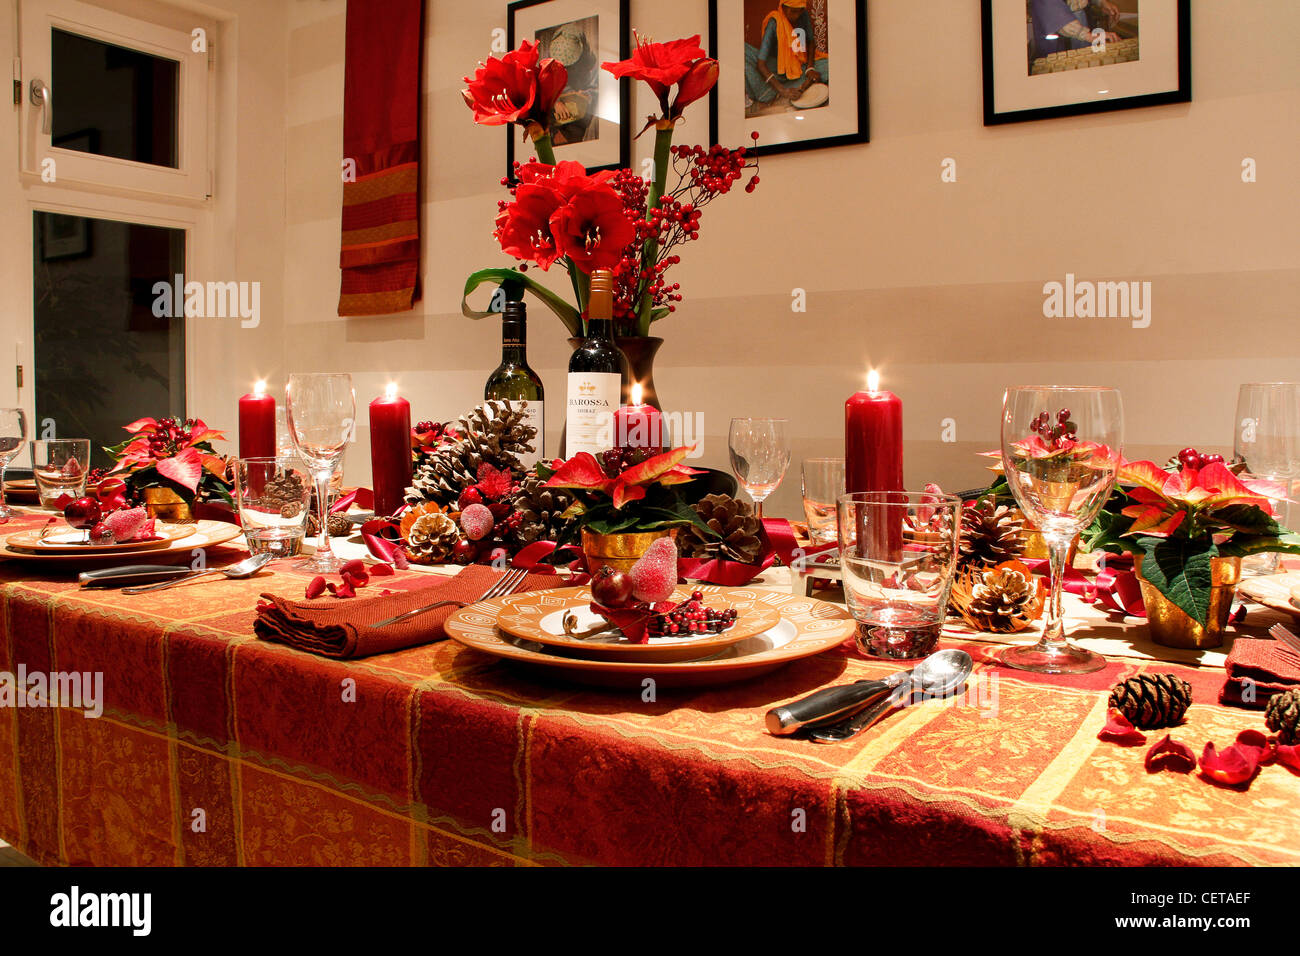 A table laid for Christmas dinner at home. - Stock Image